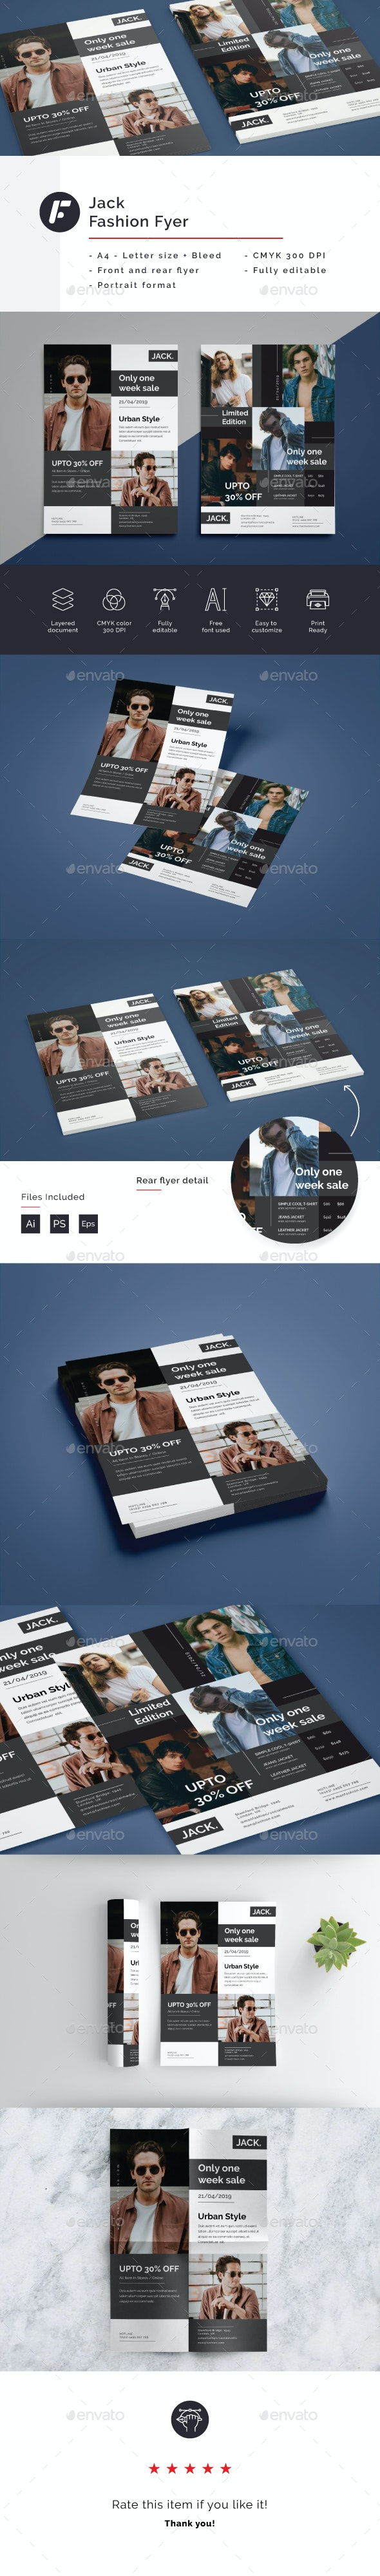 Jack - Fashion Flyer Template - Commerce Flyers